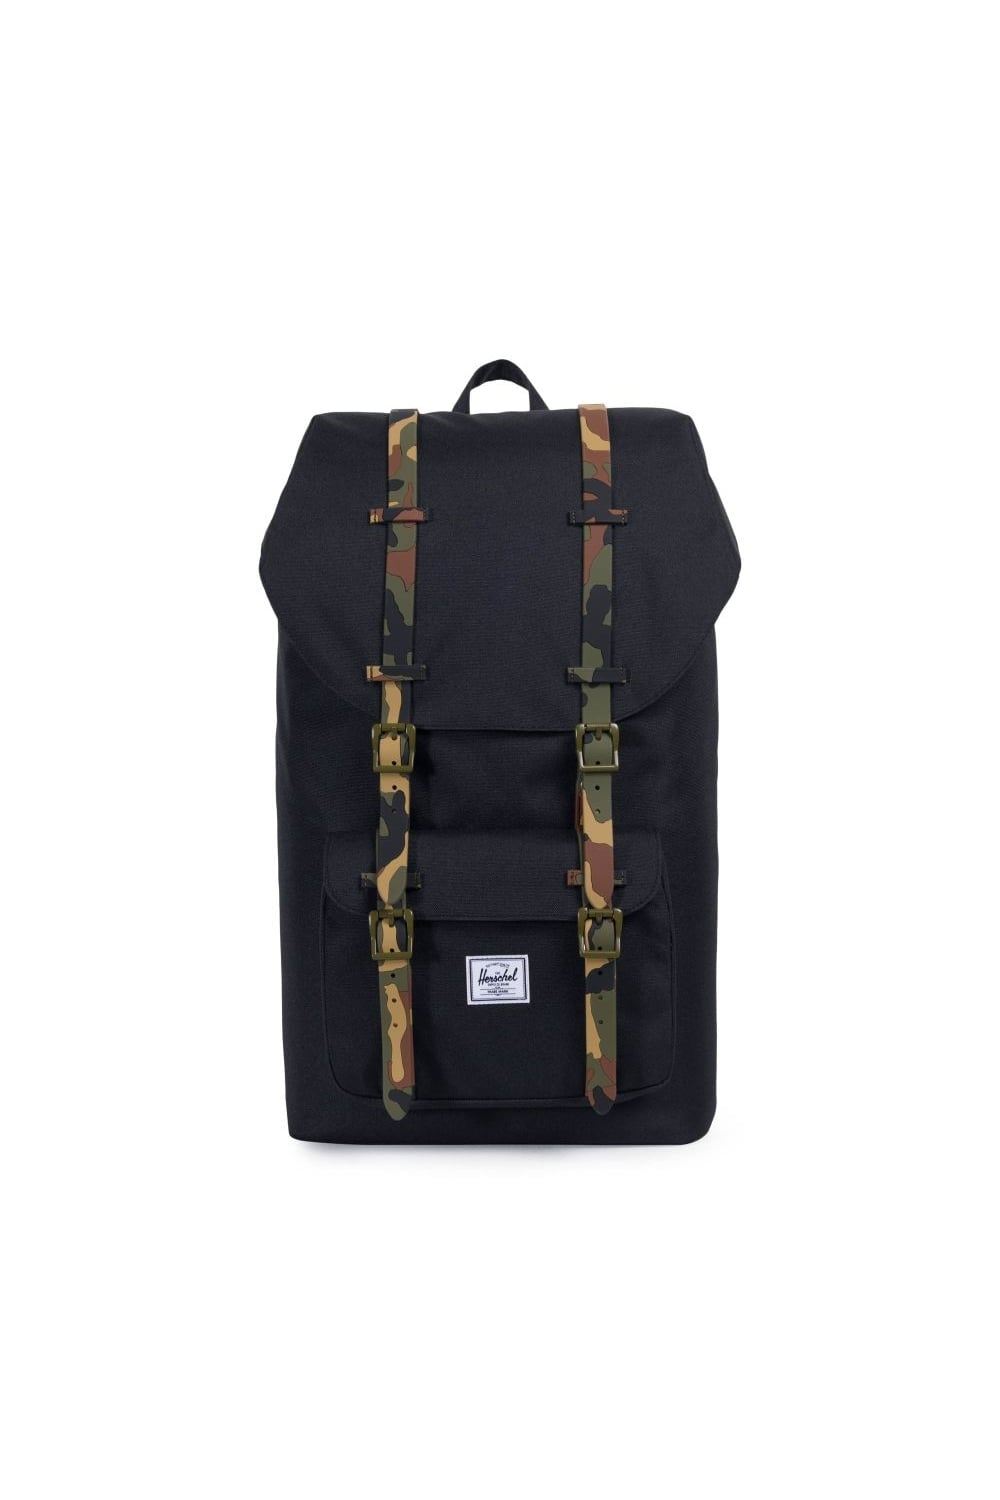 3f36fc52bda Herschel Supply Co. Little America (Black Woodland Camo Rubber ...